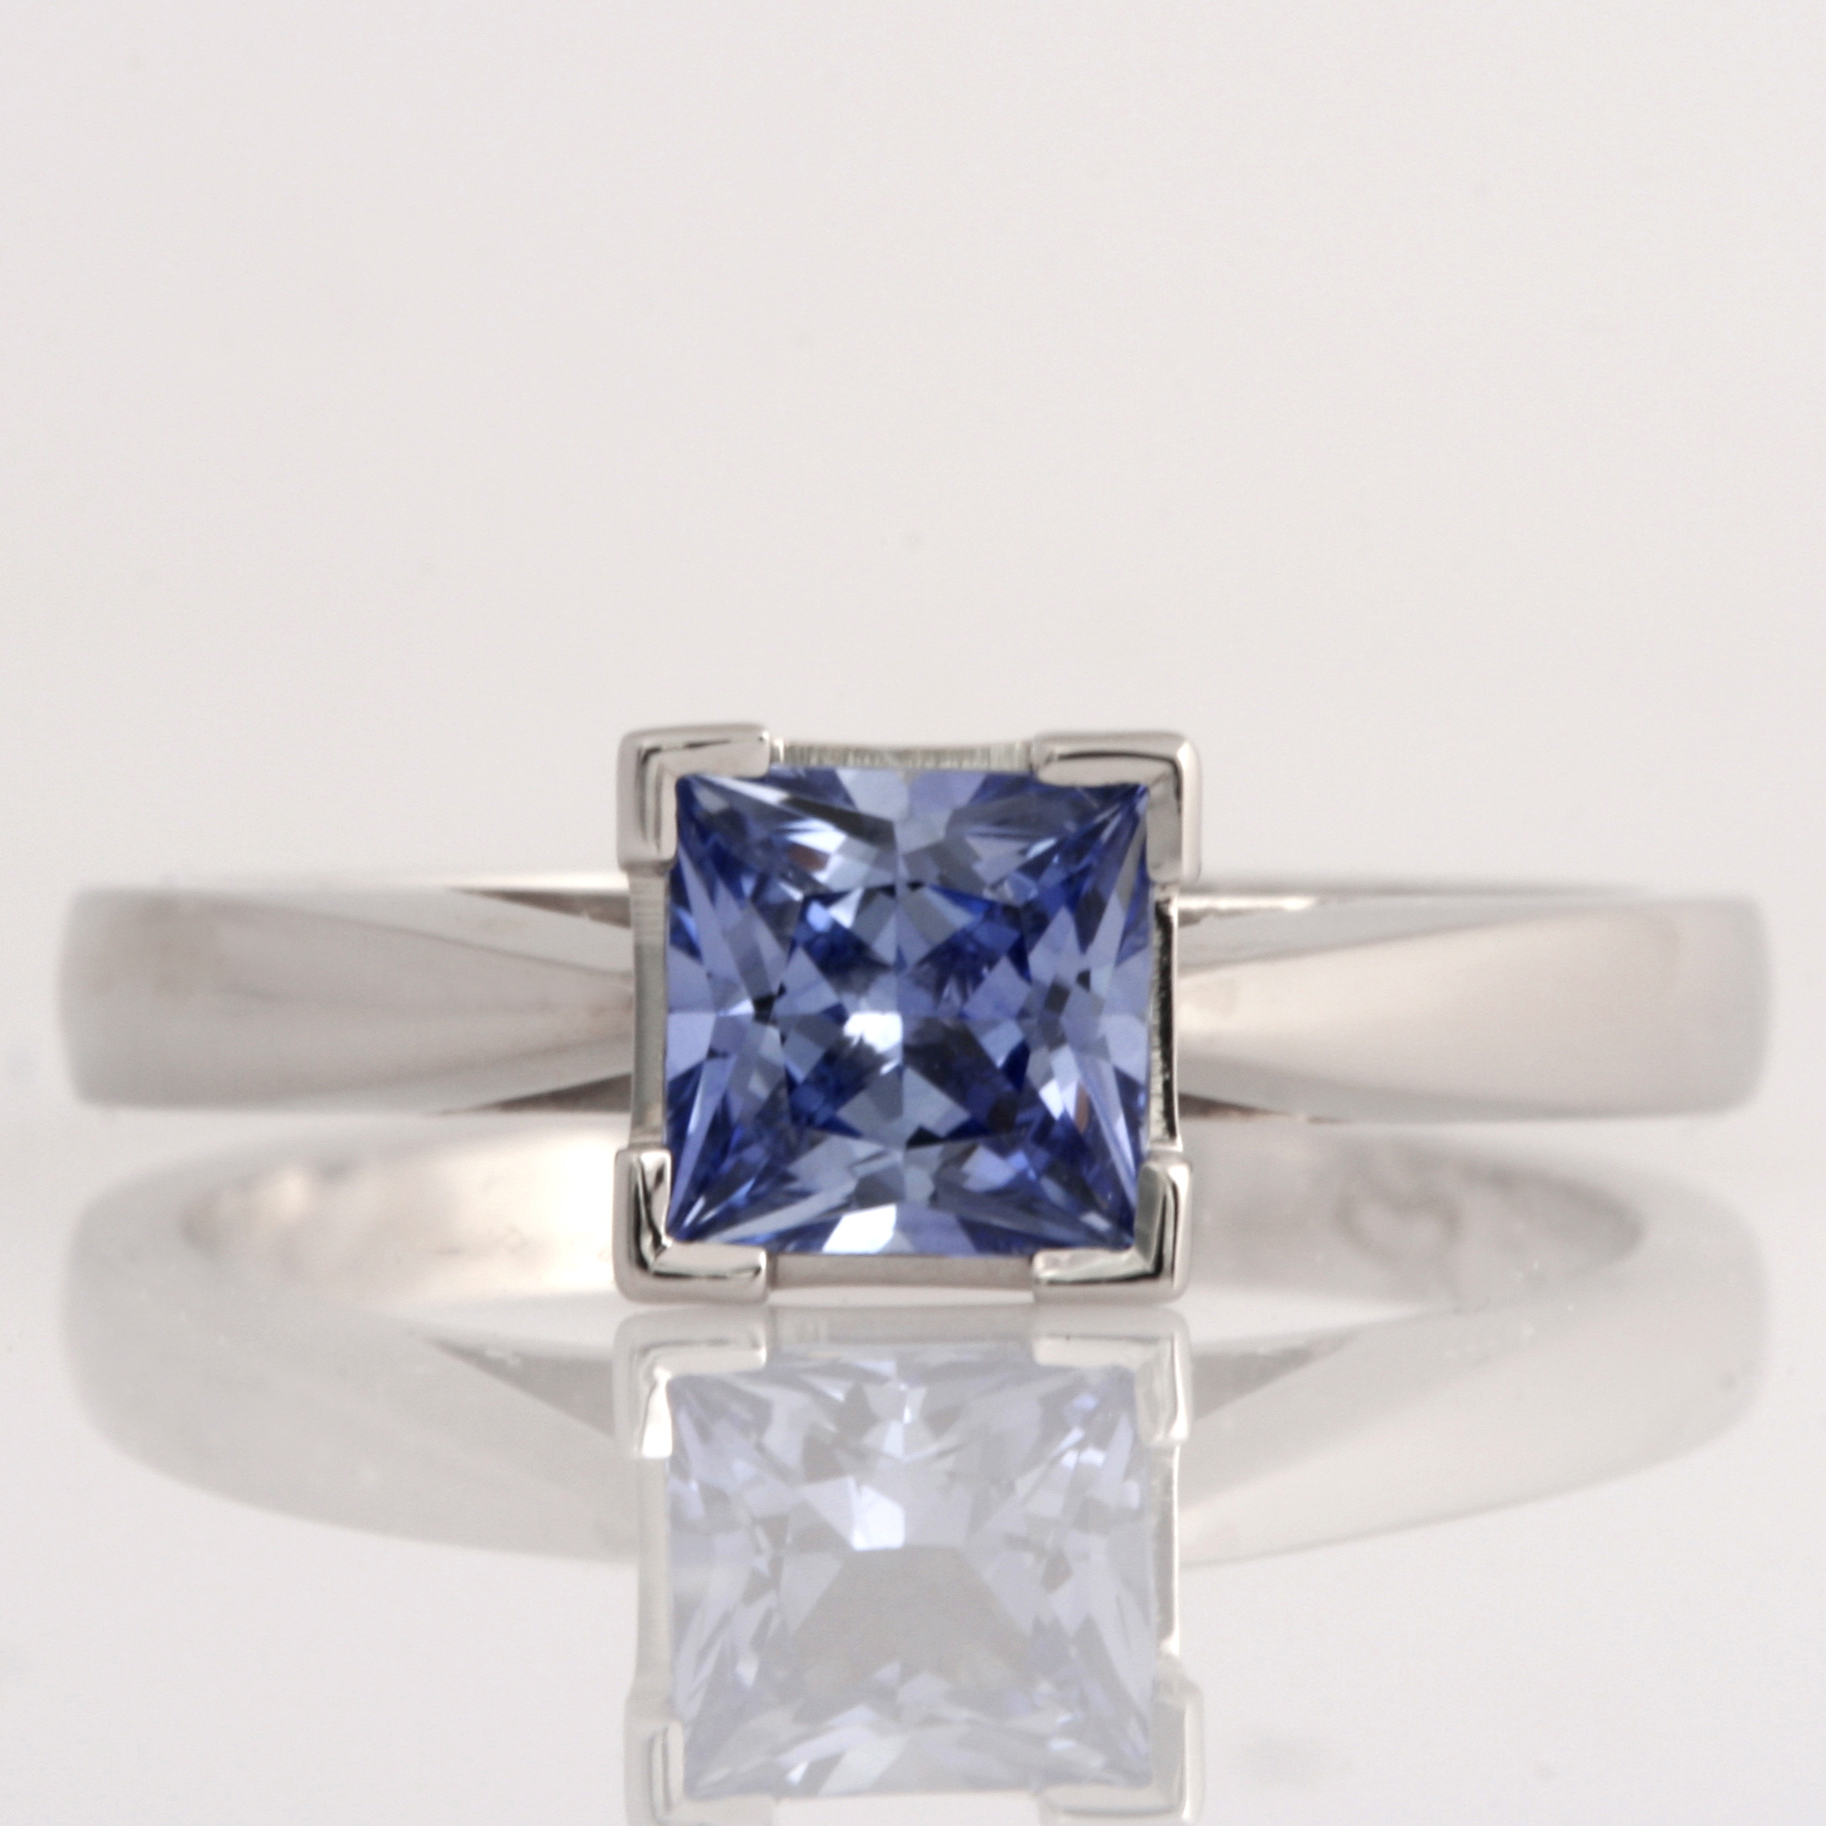 Handmade ladies platinum engagement ring featuring a square princess cut Ceylon sapphire